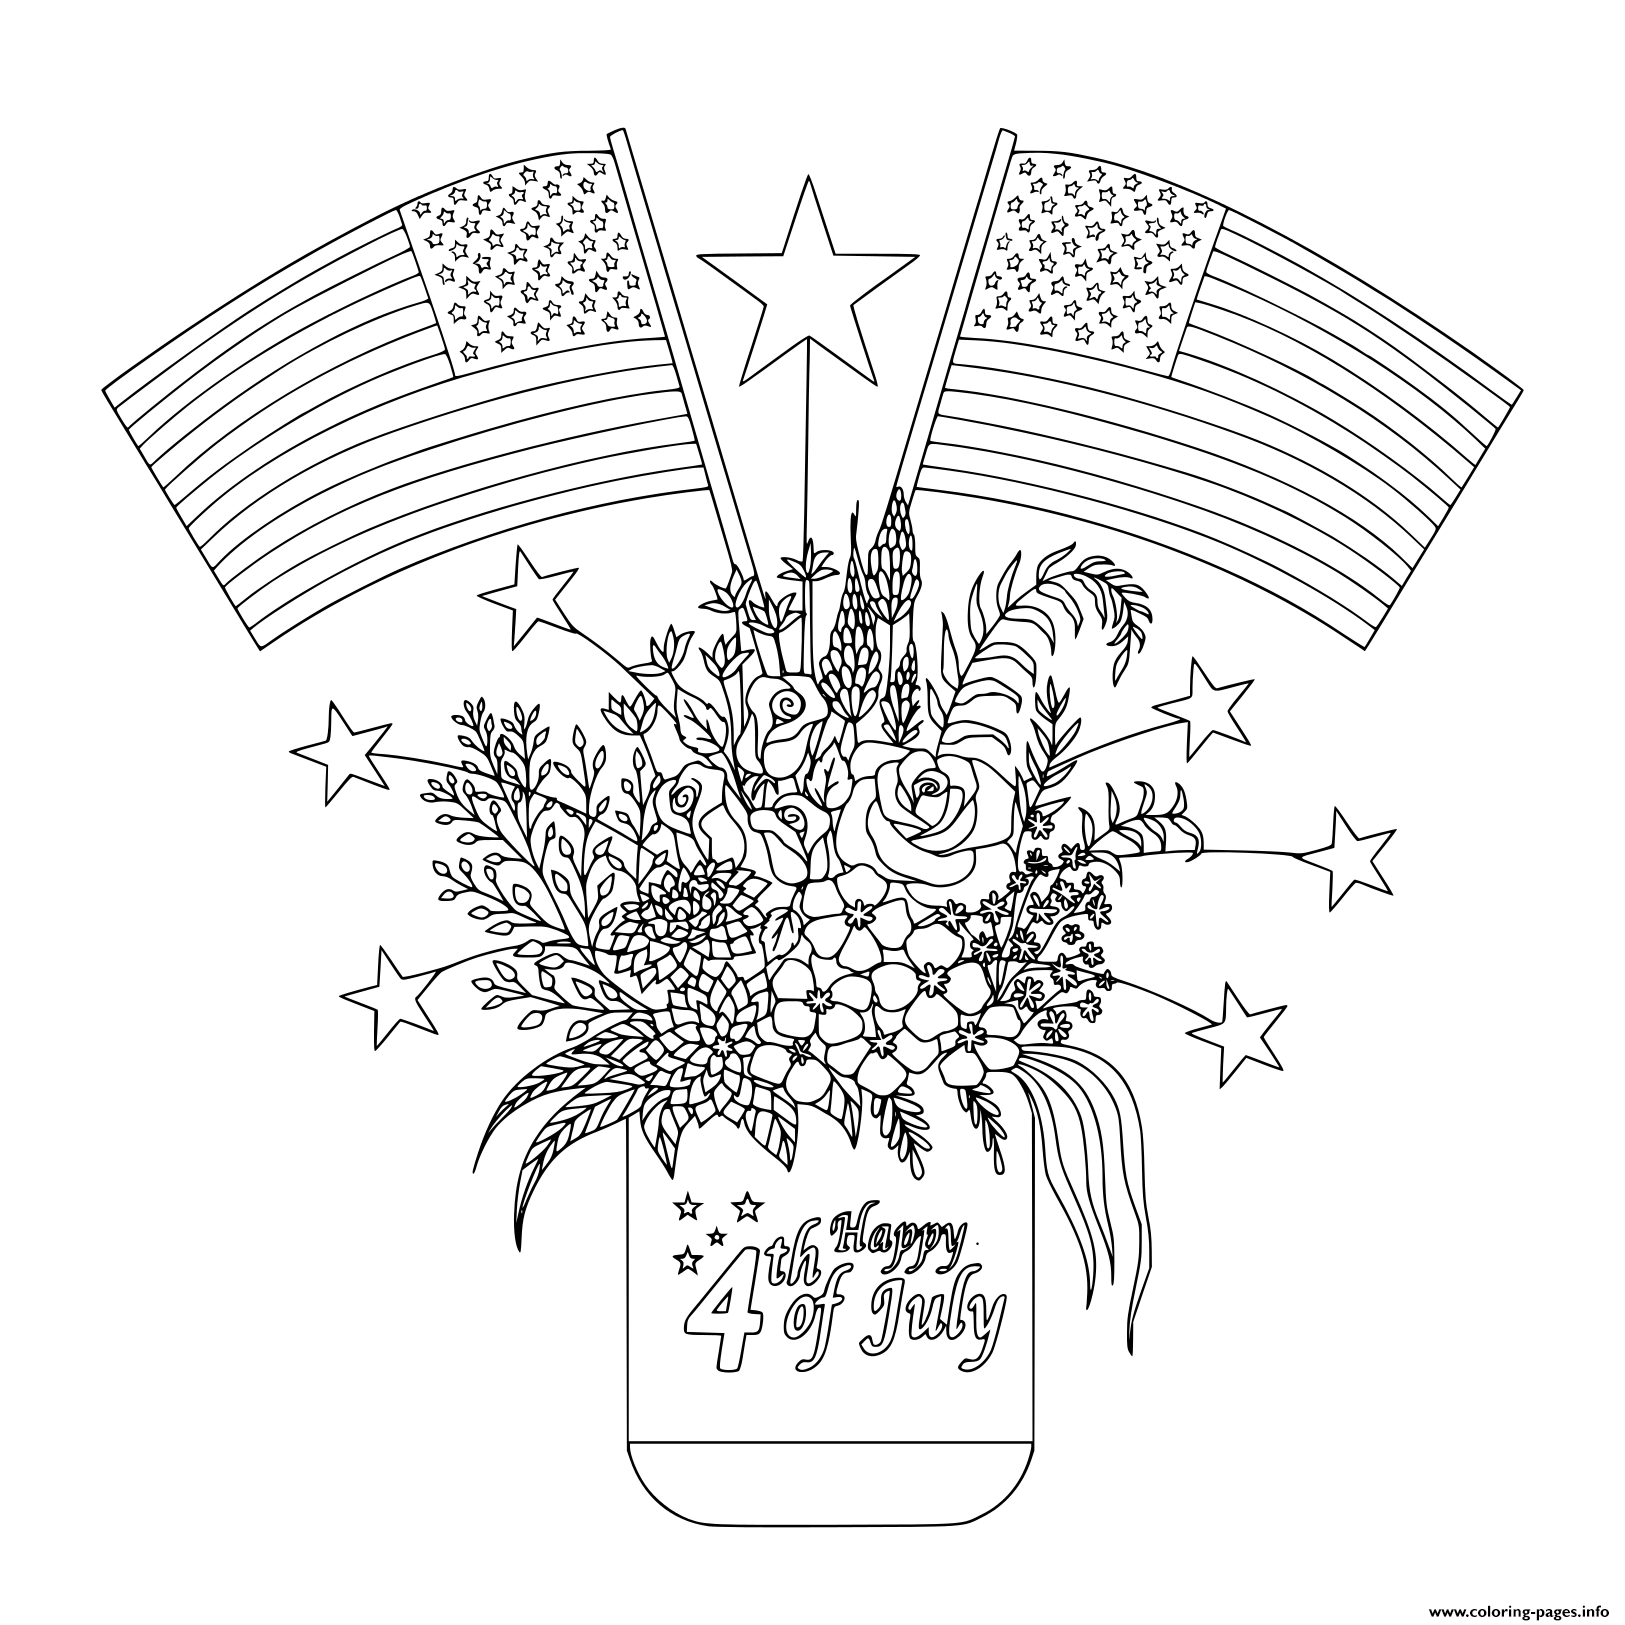 American Flags On Flowers And Decorations On A Mason Jar